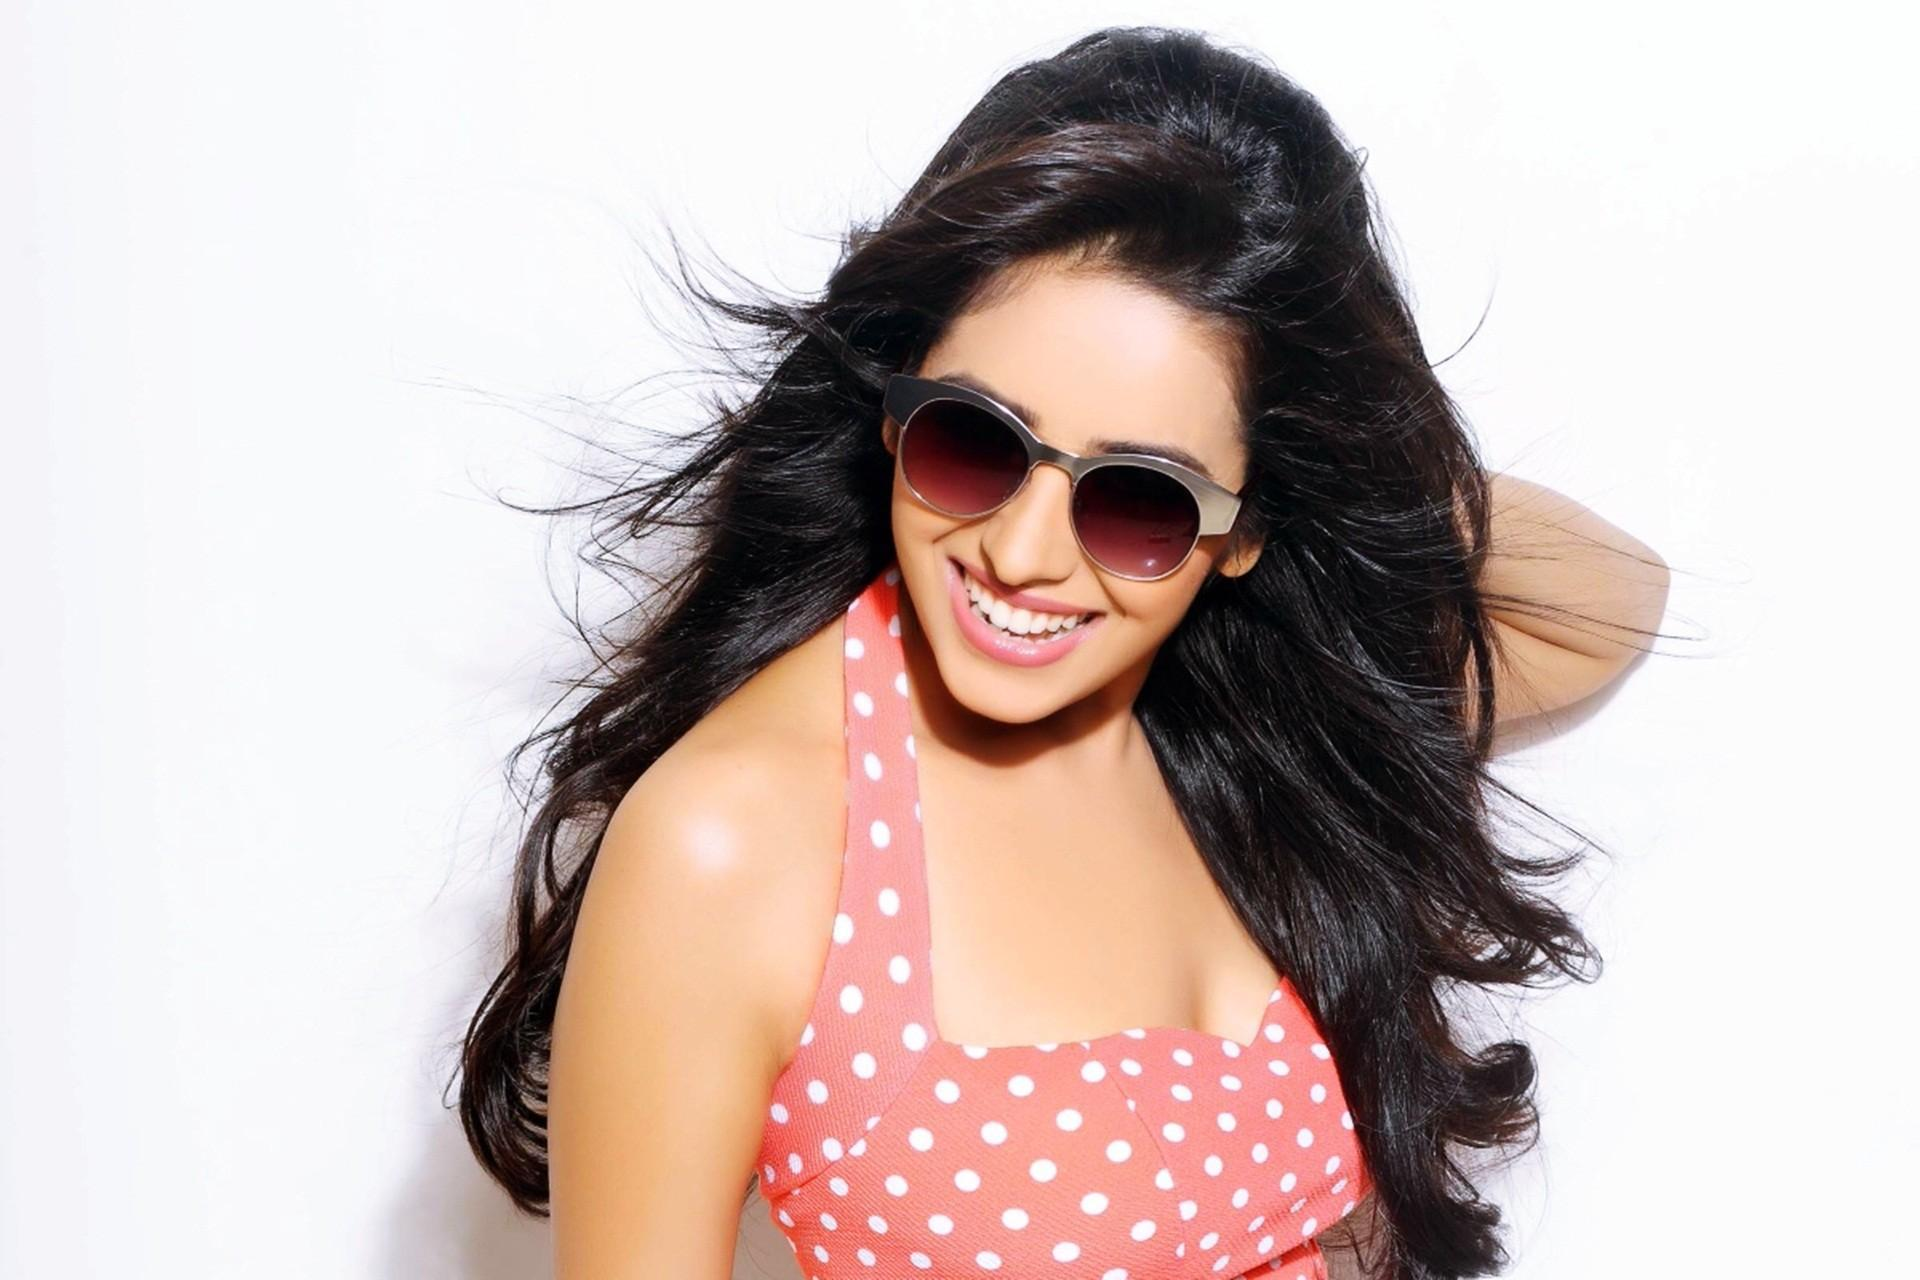 Disha Patani Wallpapers Images Photos Pictures Backgrounds